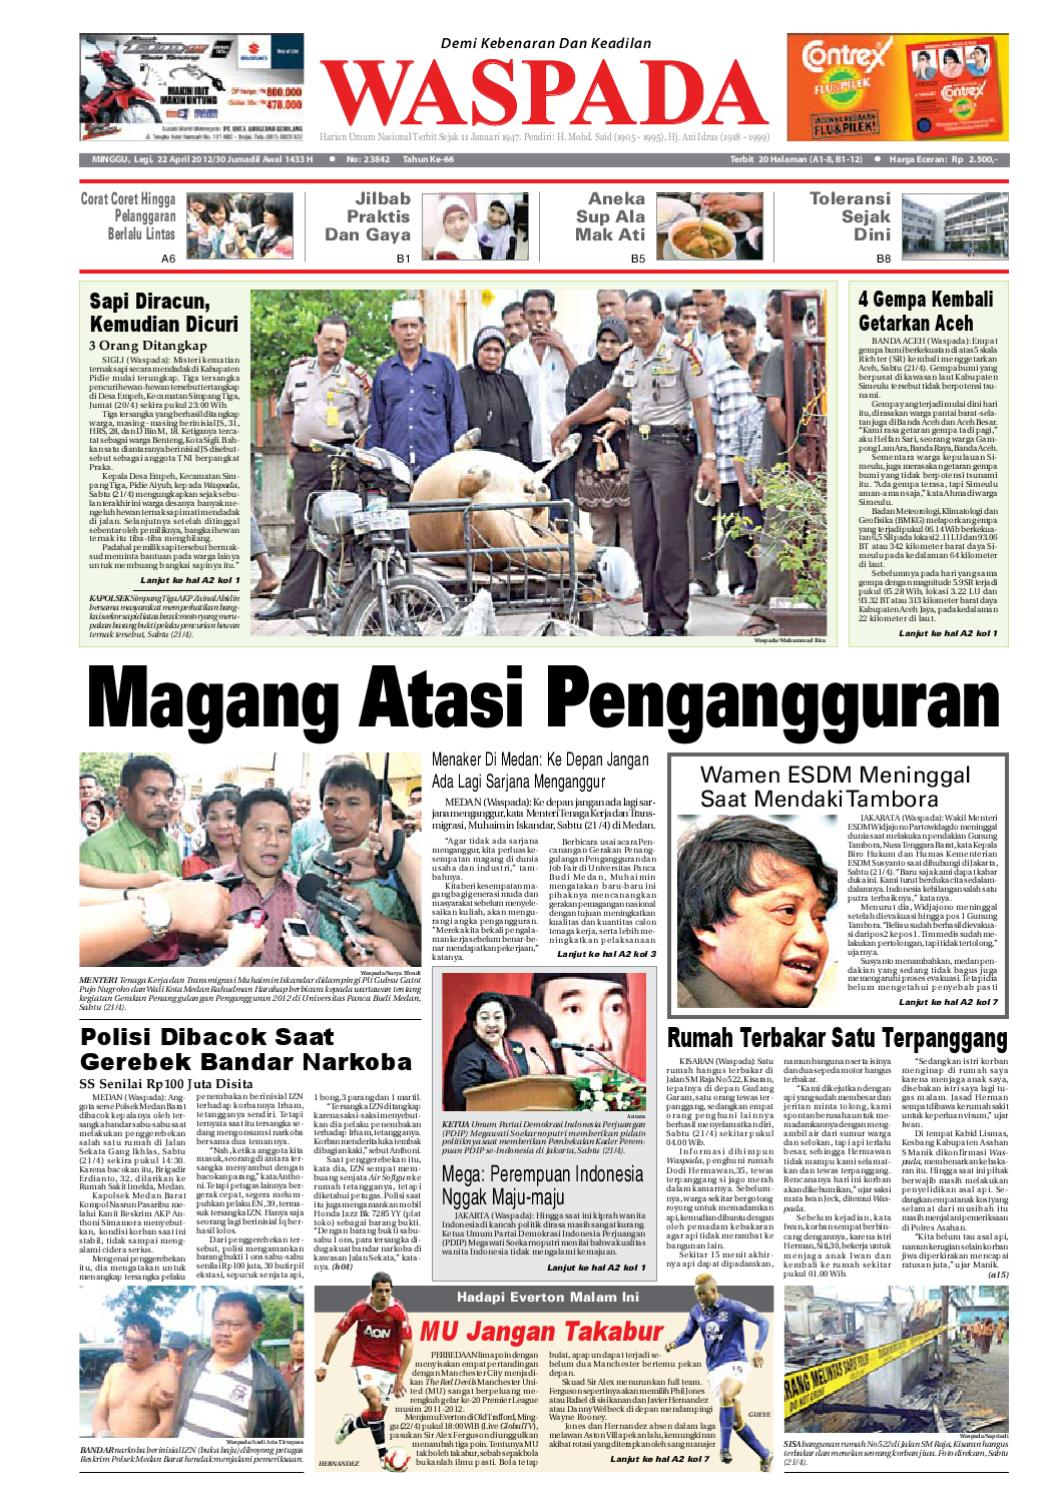 Waspada Minggu 22 April 2012 By Harian Waspada Issuu